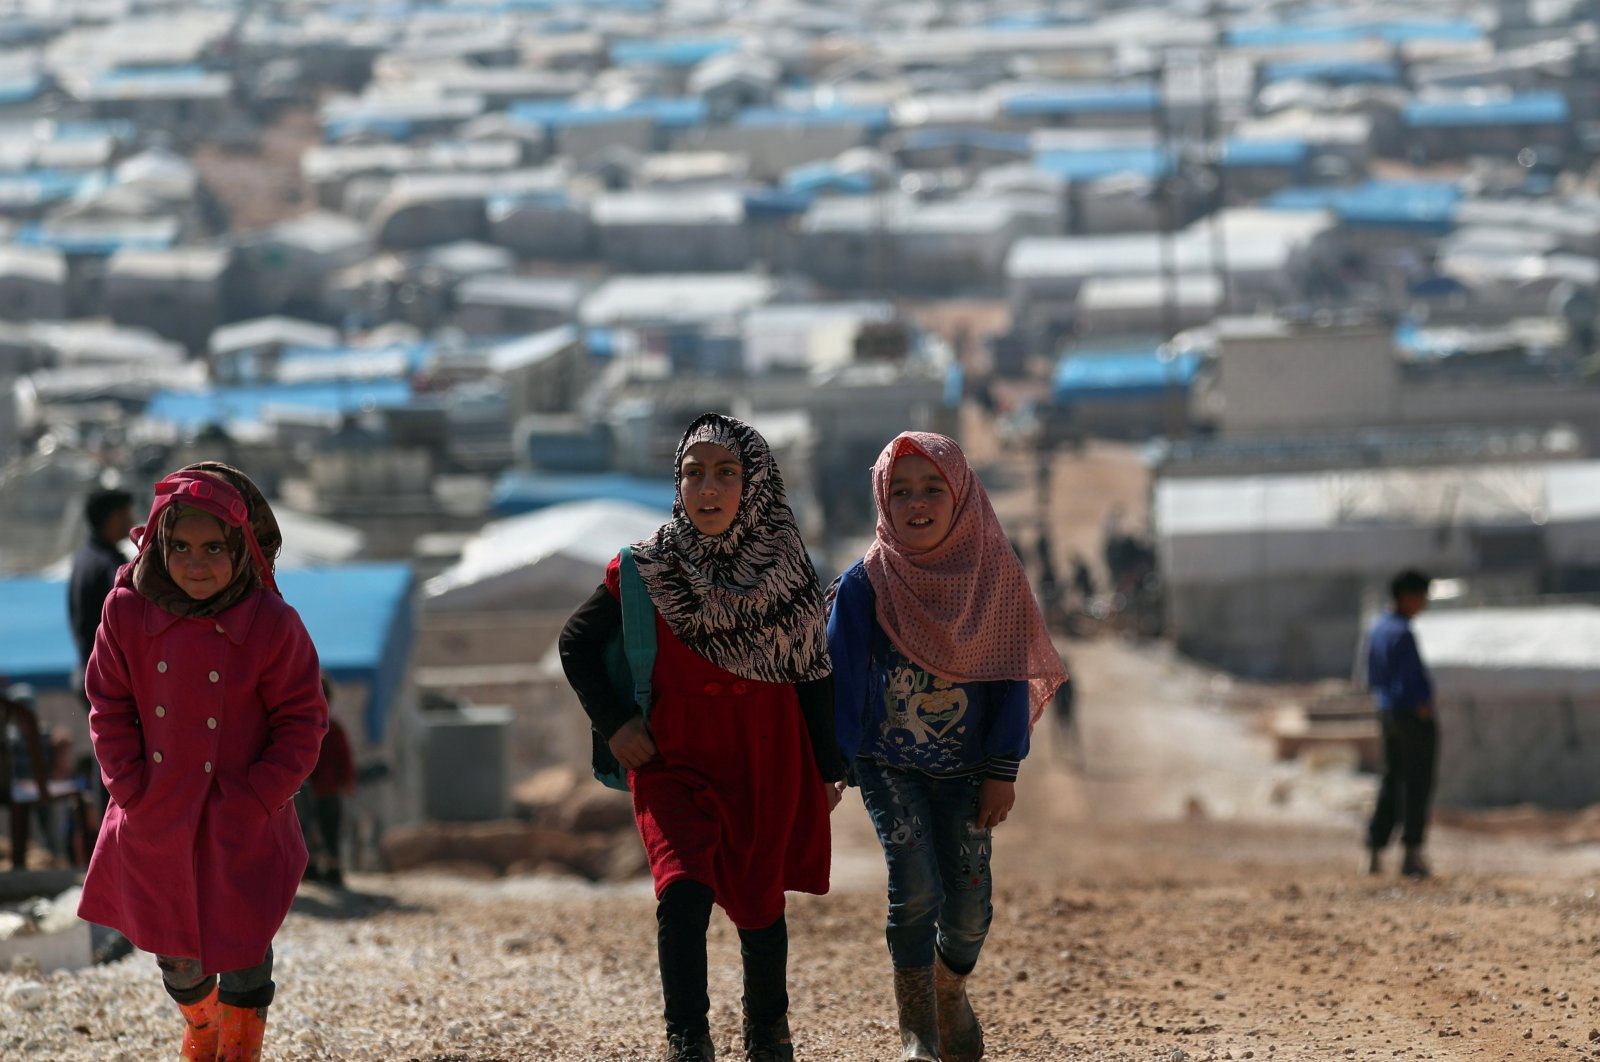 Internally displaced Syrian students walk together in Atmeh IDP camp, located near the border with Turkey, Syria March 4, 2020. (Reuters File Photo)